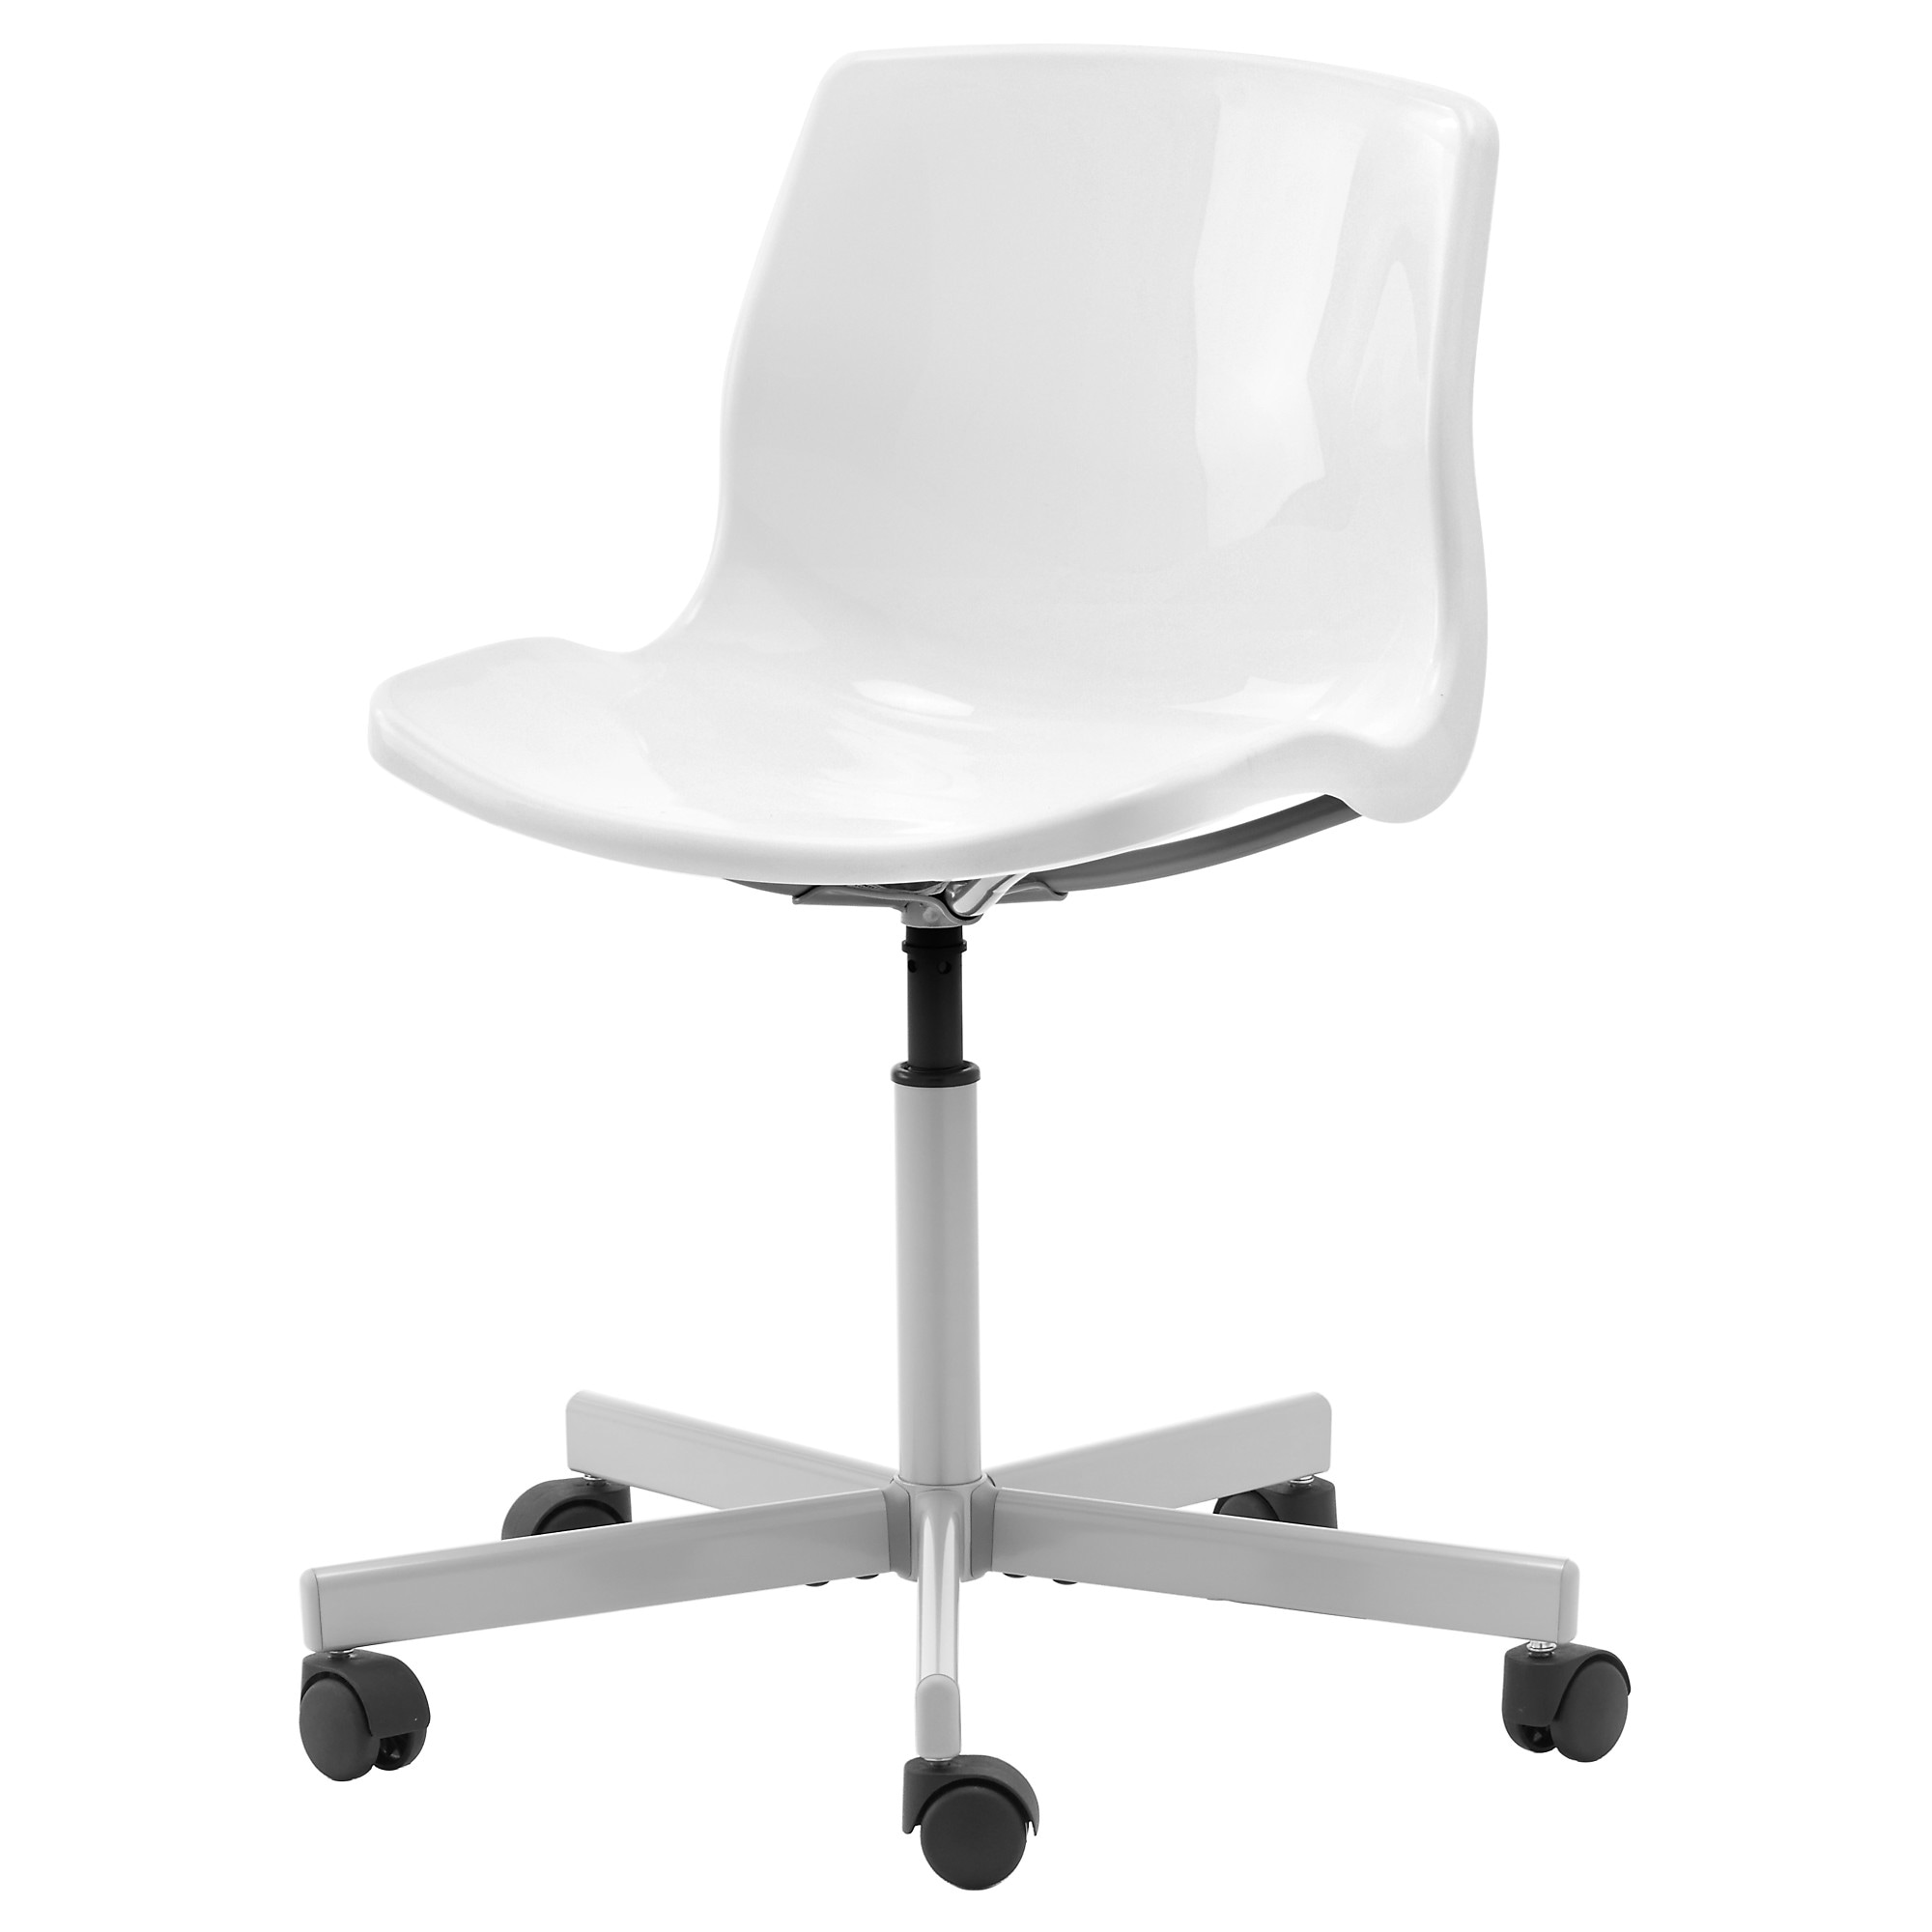 Black chair and white chair - Snille Swivel Chair White Tested For 243 Lb Width 26 3 8